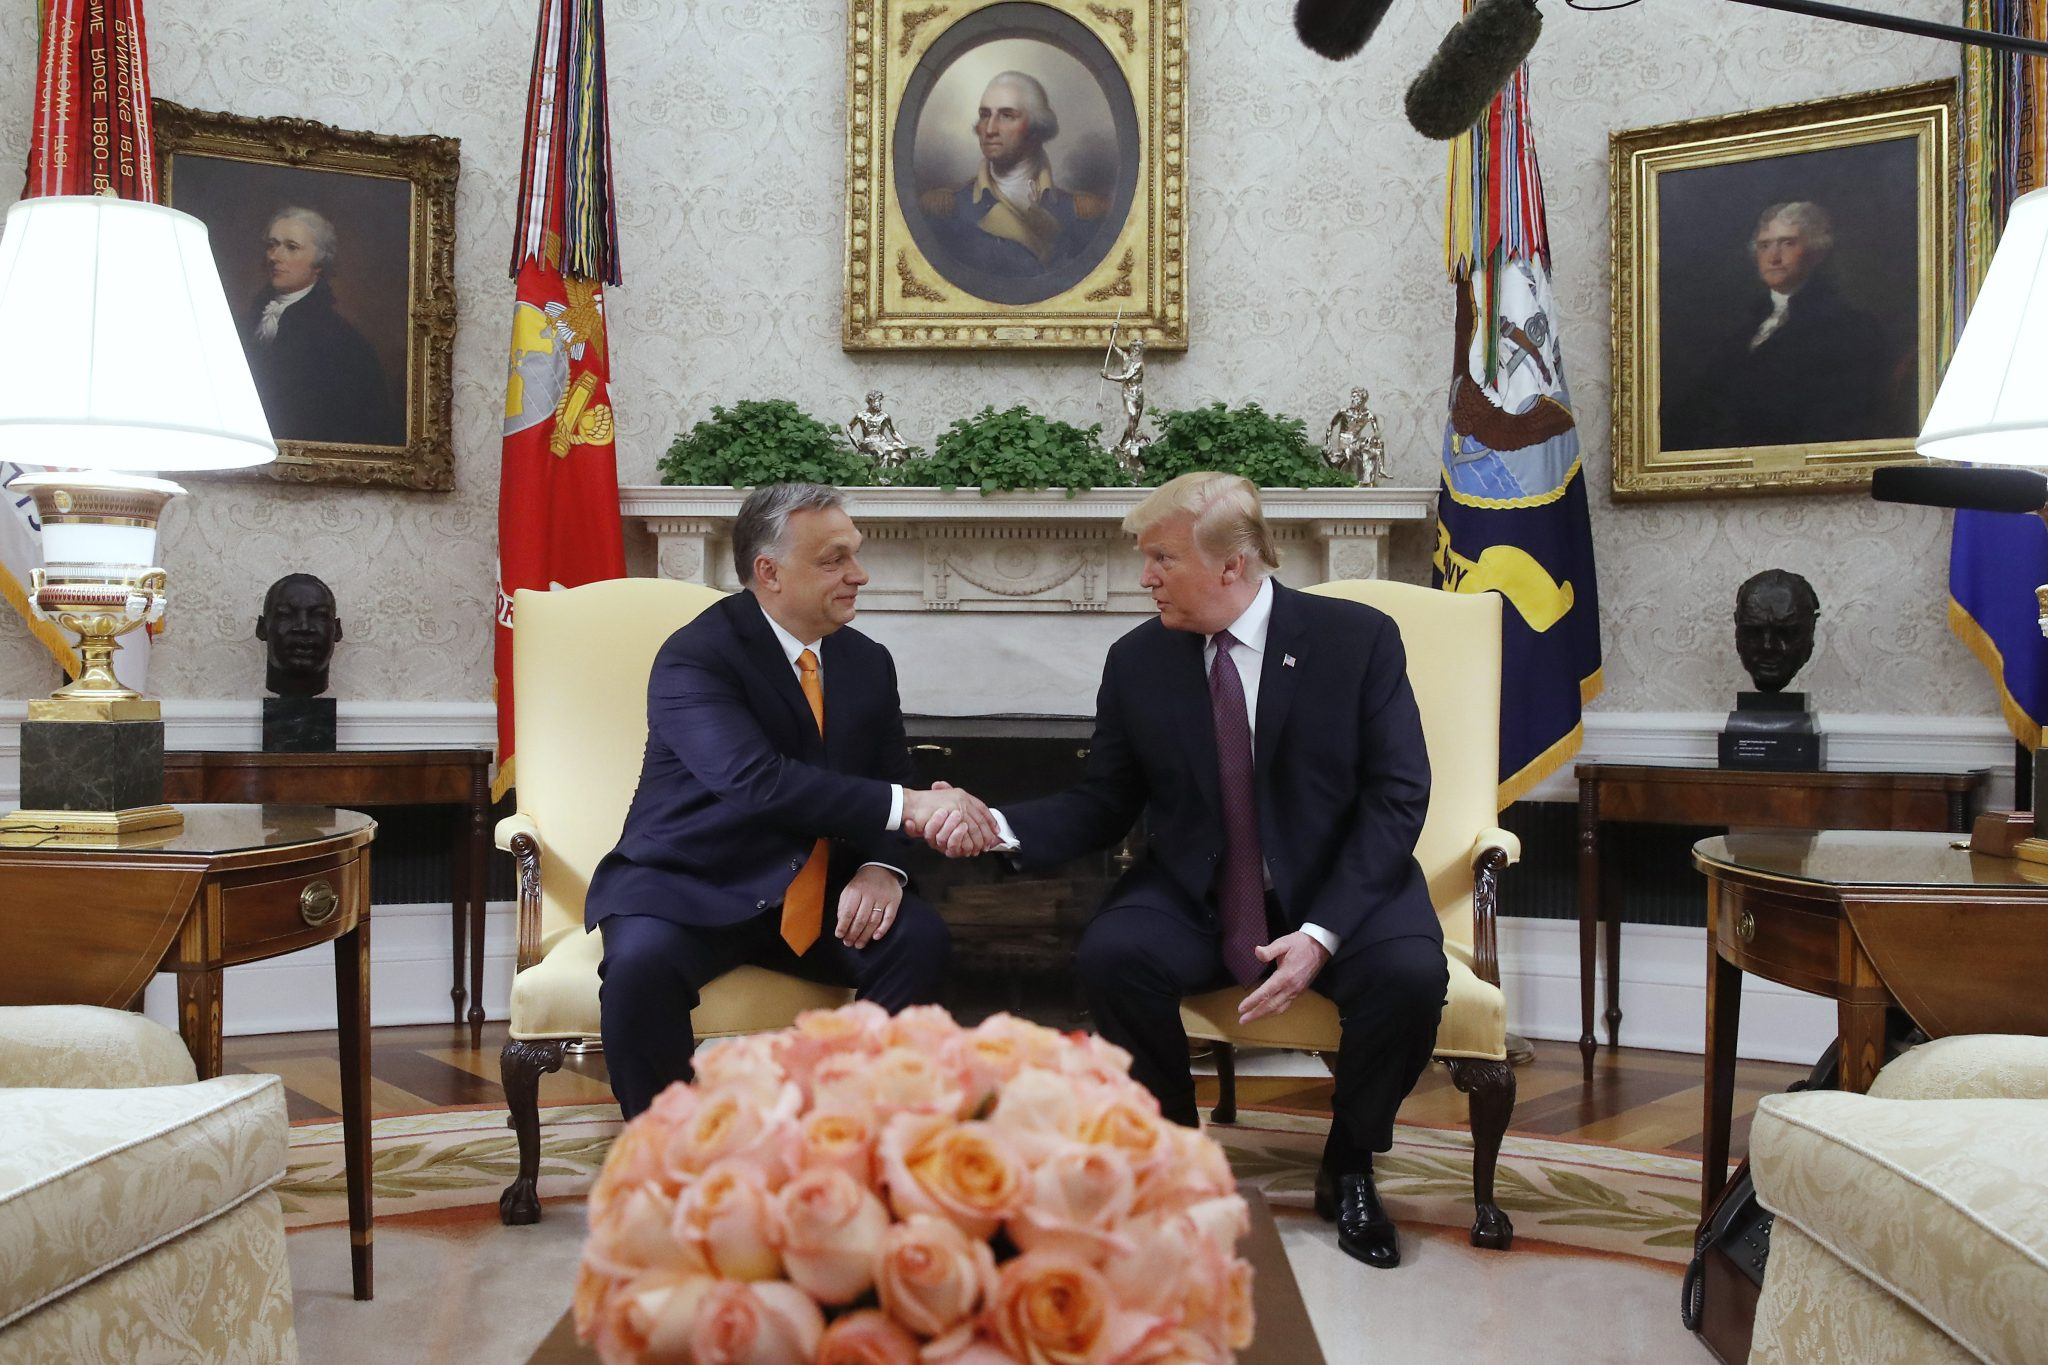 If Trump Wins, What Can Hungary Expect?